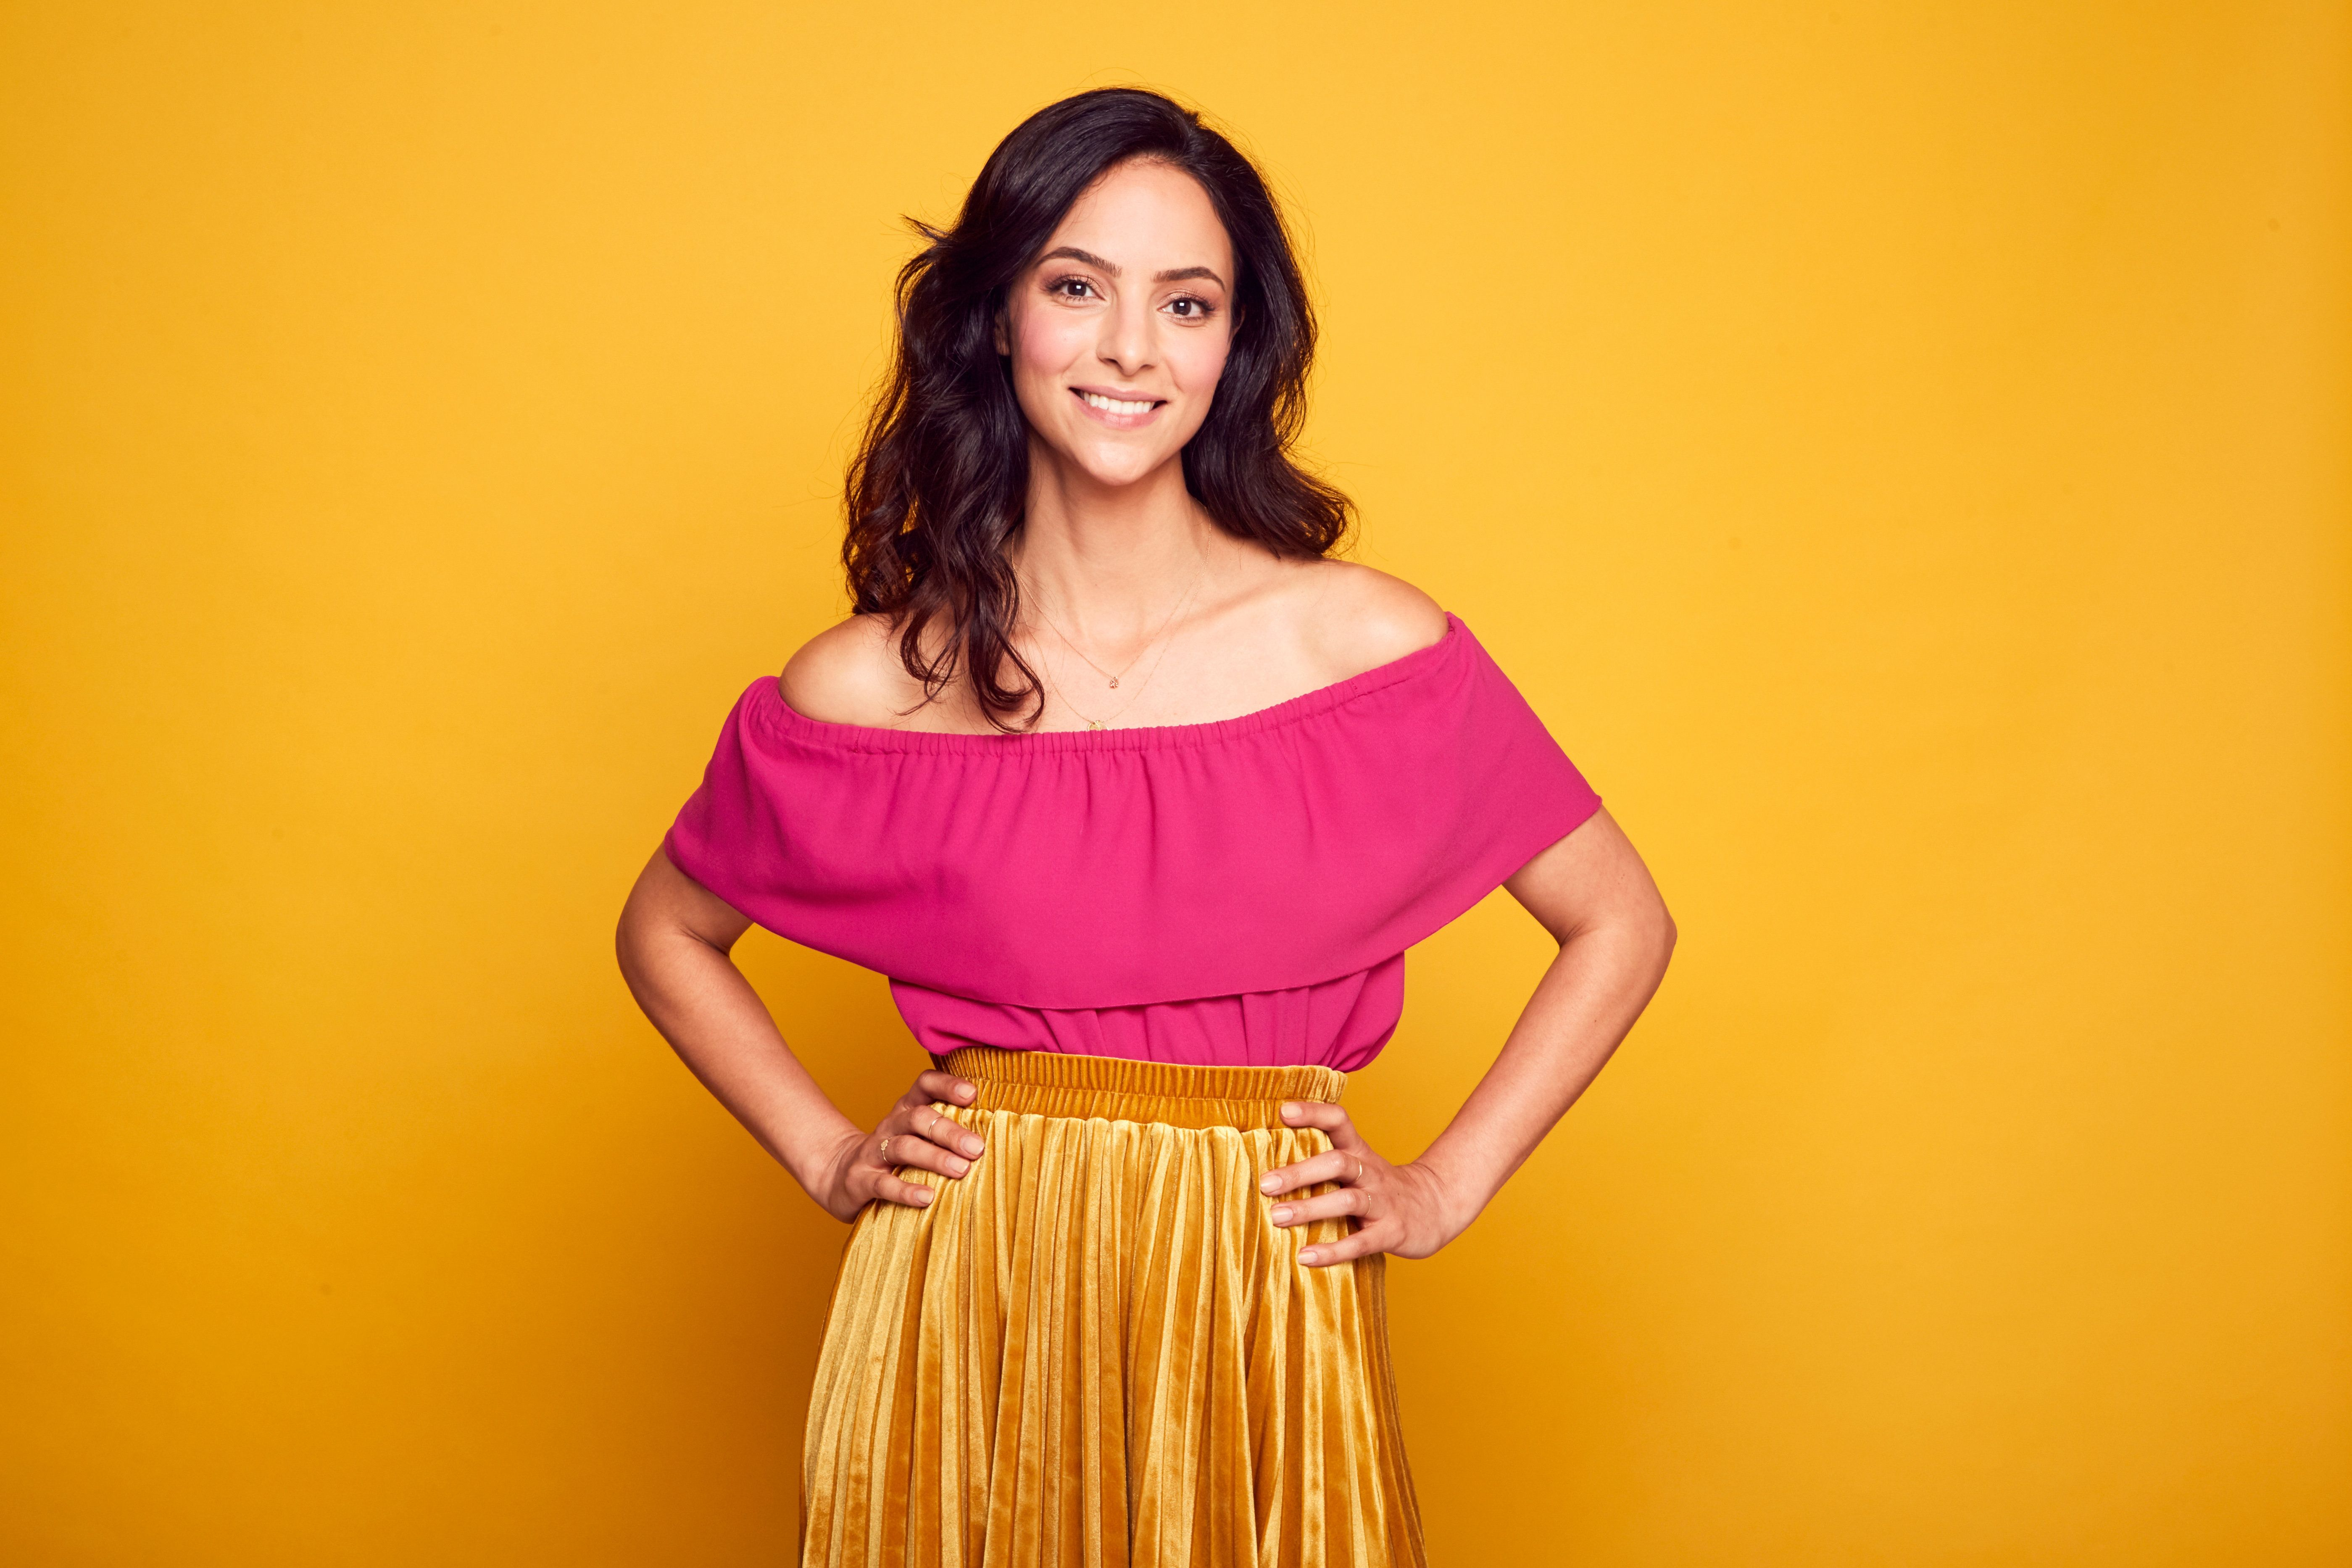 Actor Tala Ashe of CW's 'DC's Legends of Tomorrow' poses for a portrait during the 2017 Summer Television Critics Association